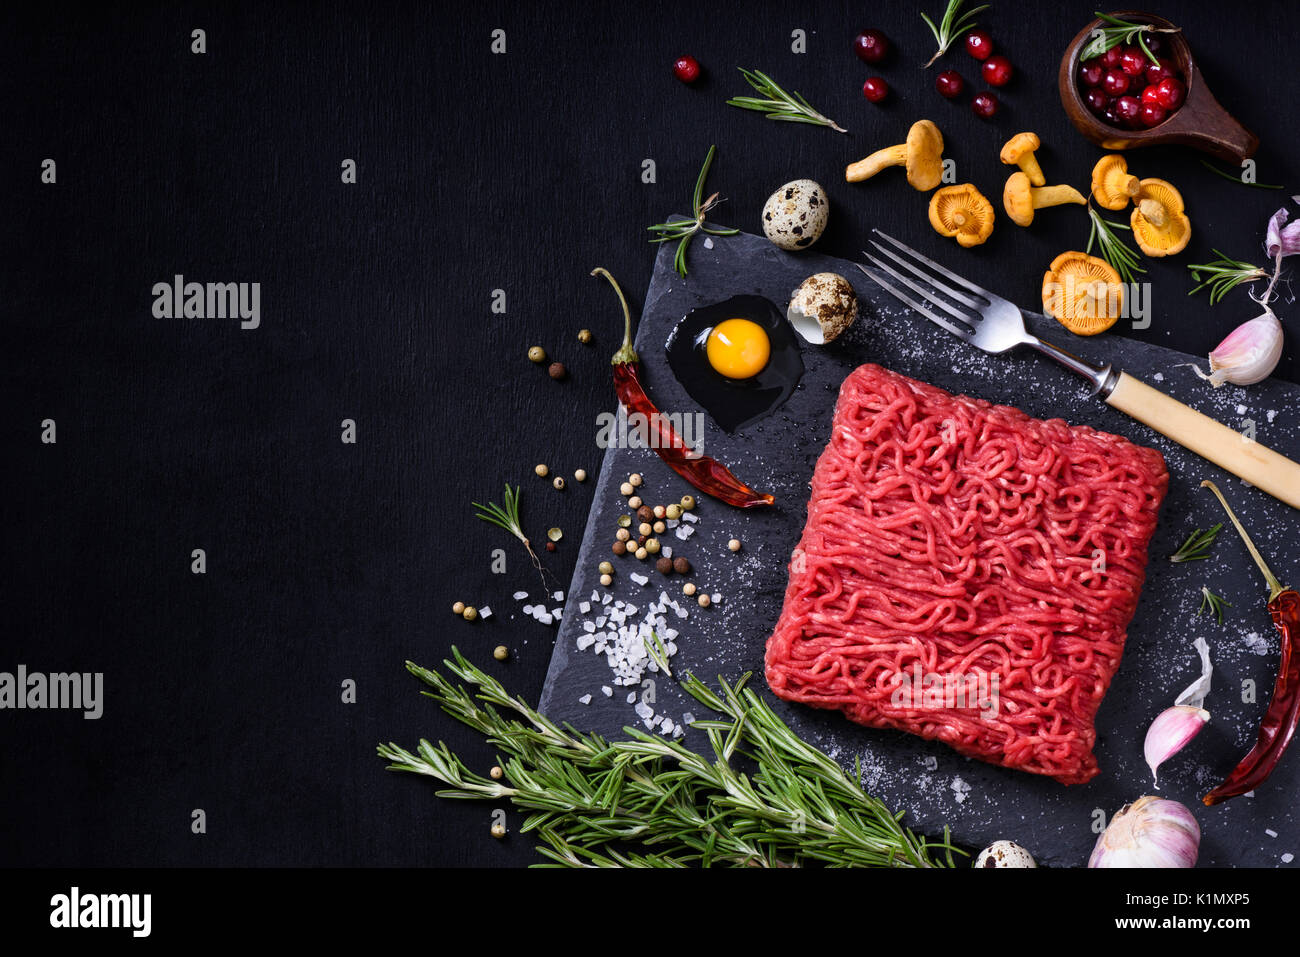 Tasty raw veal or beef meat on black table. Cooking ingredients with ground meat. Top view, copy space. - Stock Image